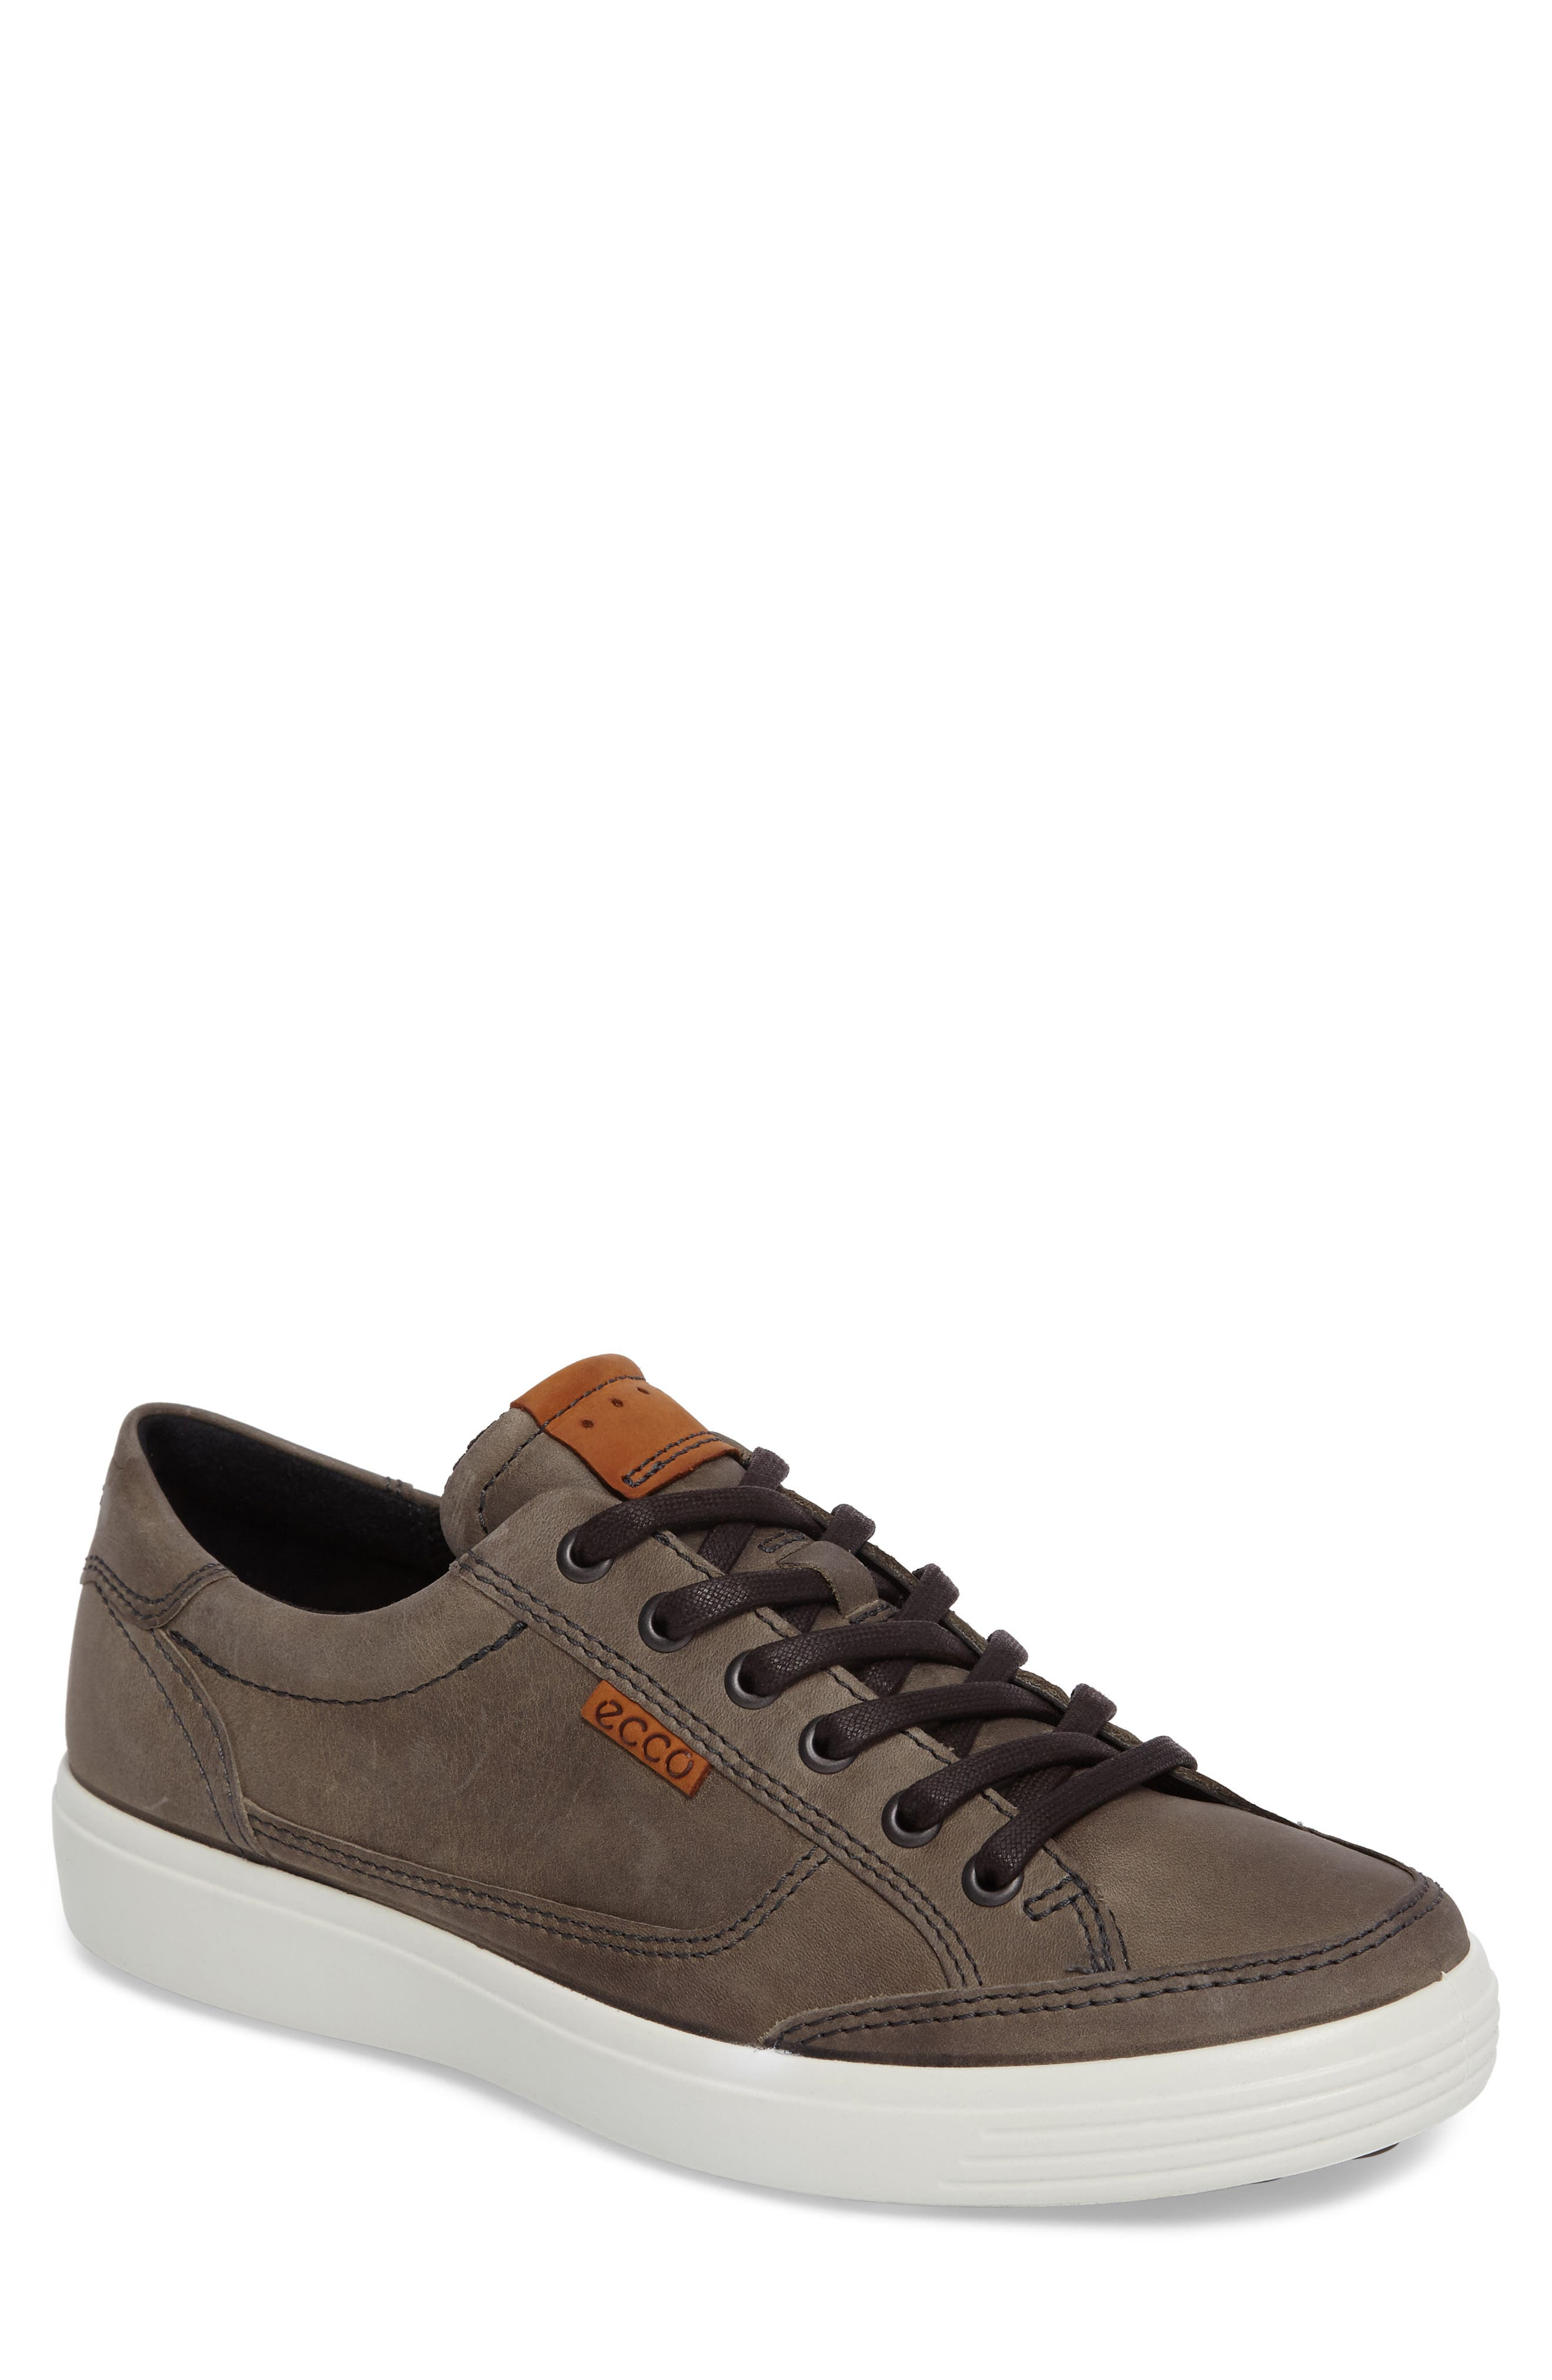 Soft 7 Sneaker,                             Main thumbnail 1, color,                             Wild Dove Leather